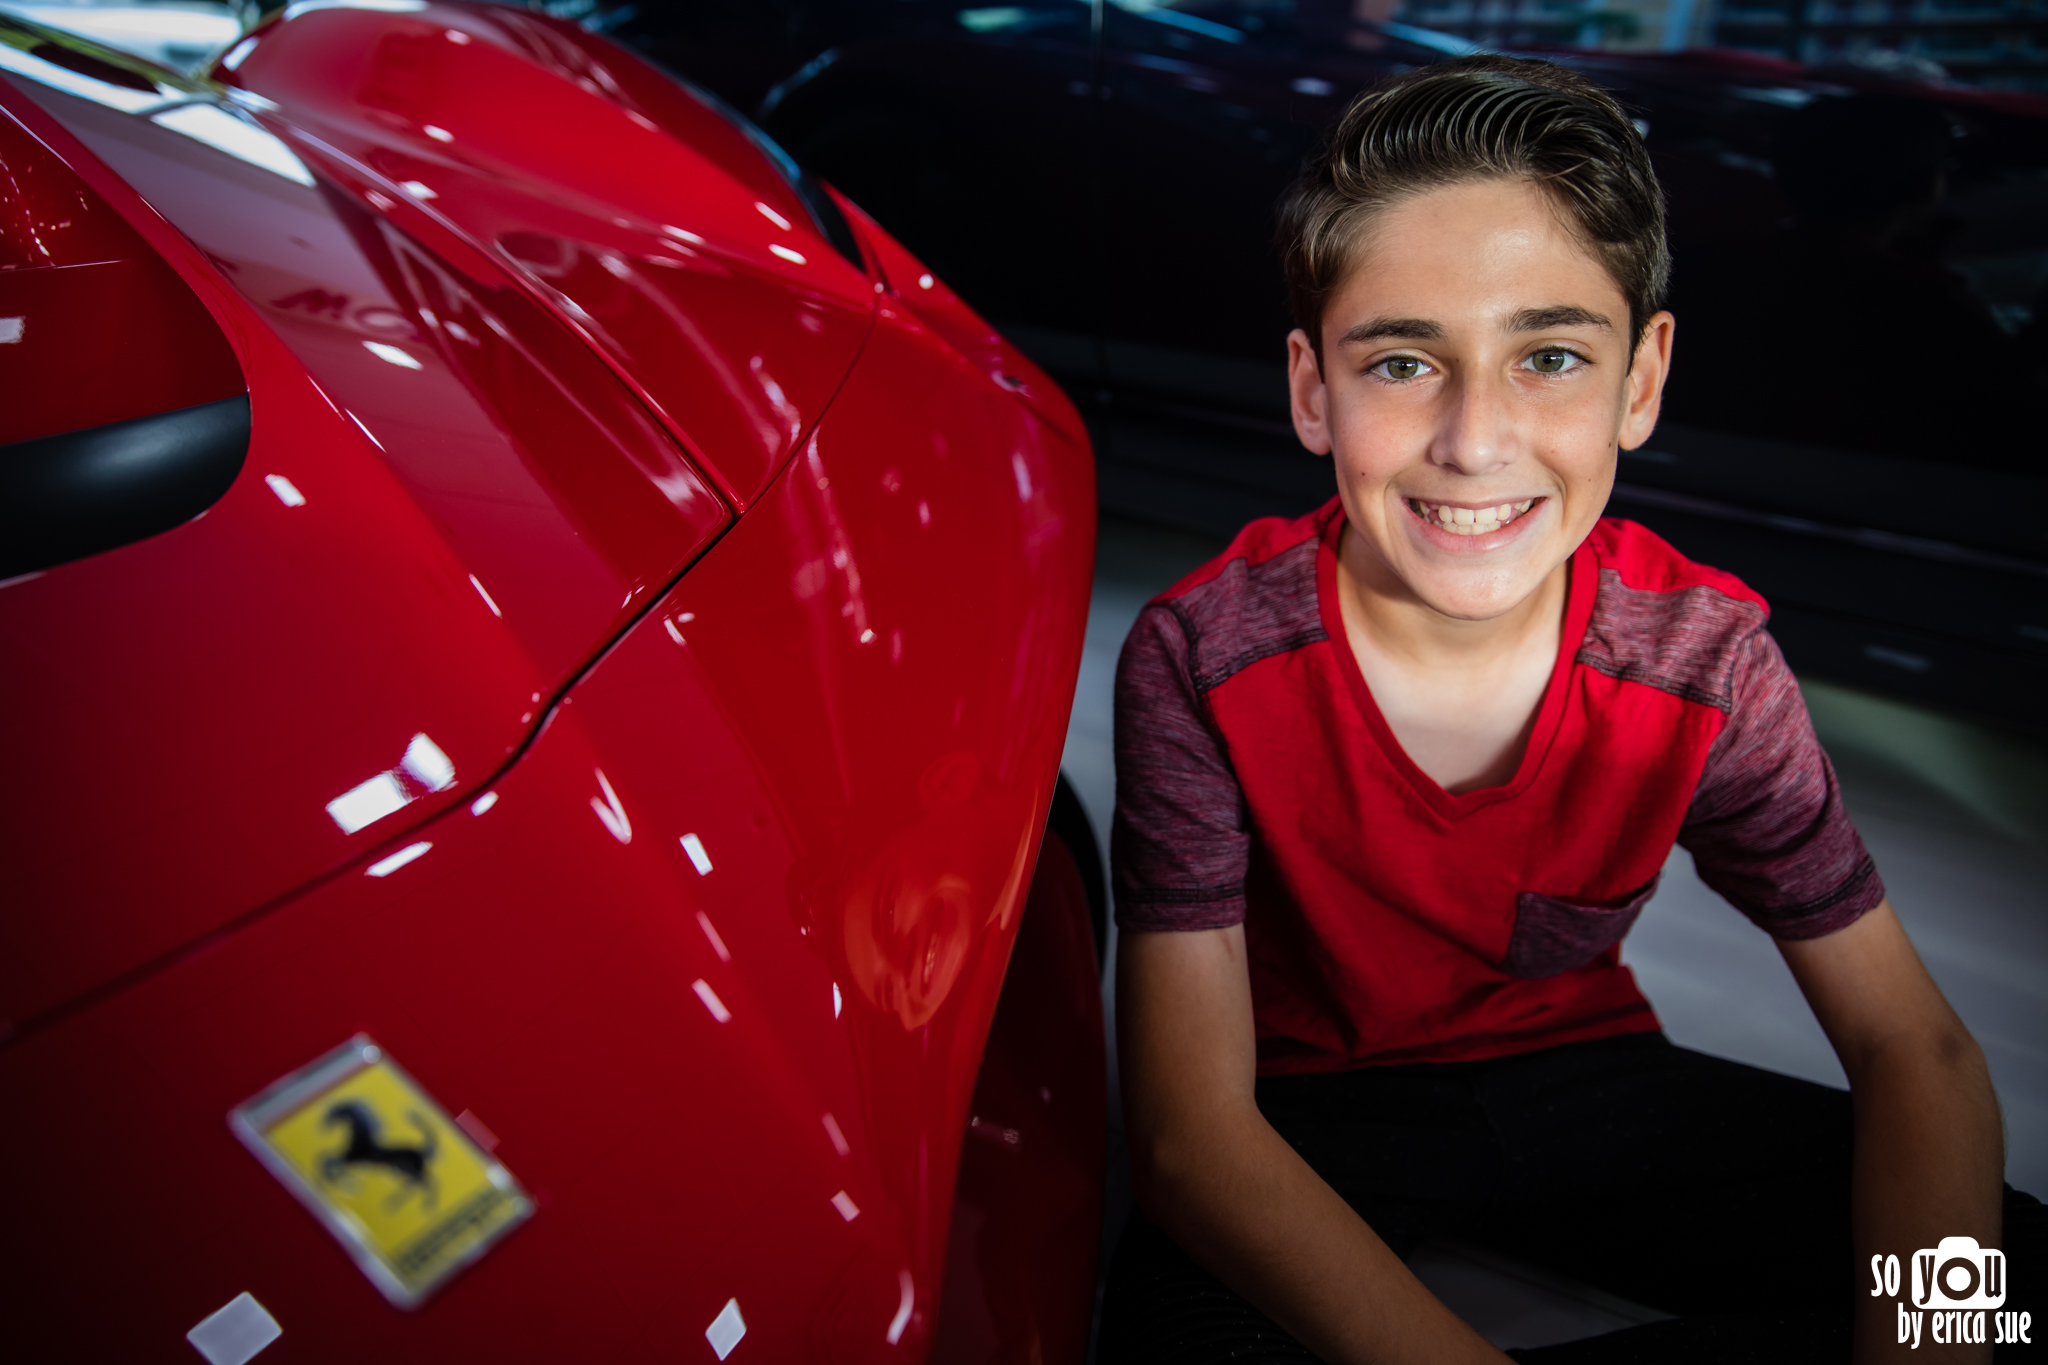 so-you-by-erica-sue-mitzvah-photographer-collection-luxury-car-ft-lauderdale-4911.jpg